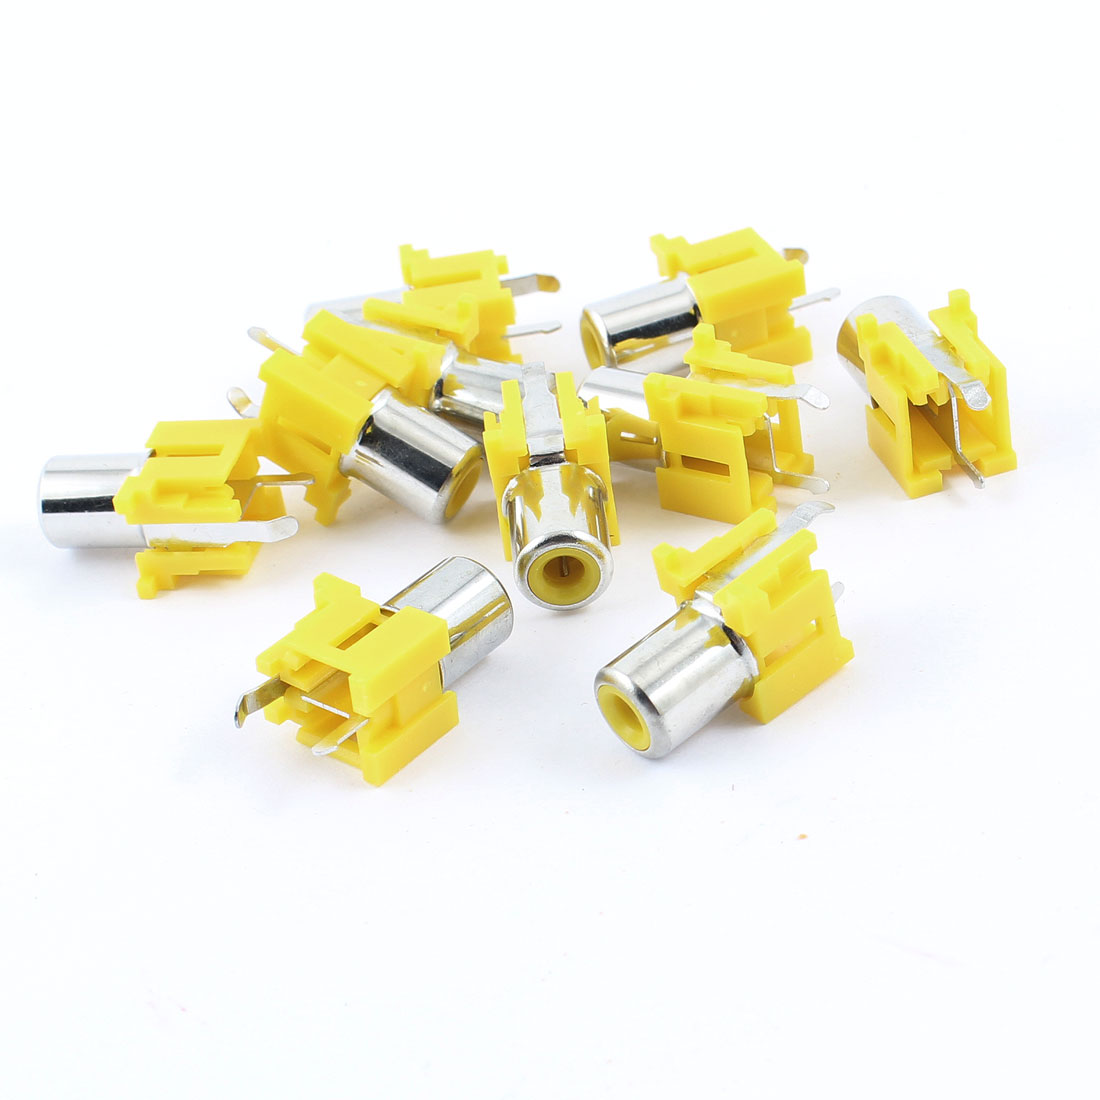 10 Pcs Mini Female Audio Jack RCA Mount with 2 Terminal 3mm Socket Yellow